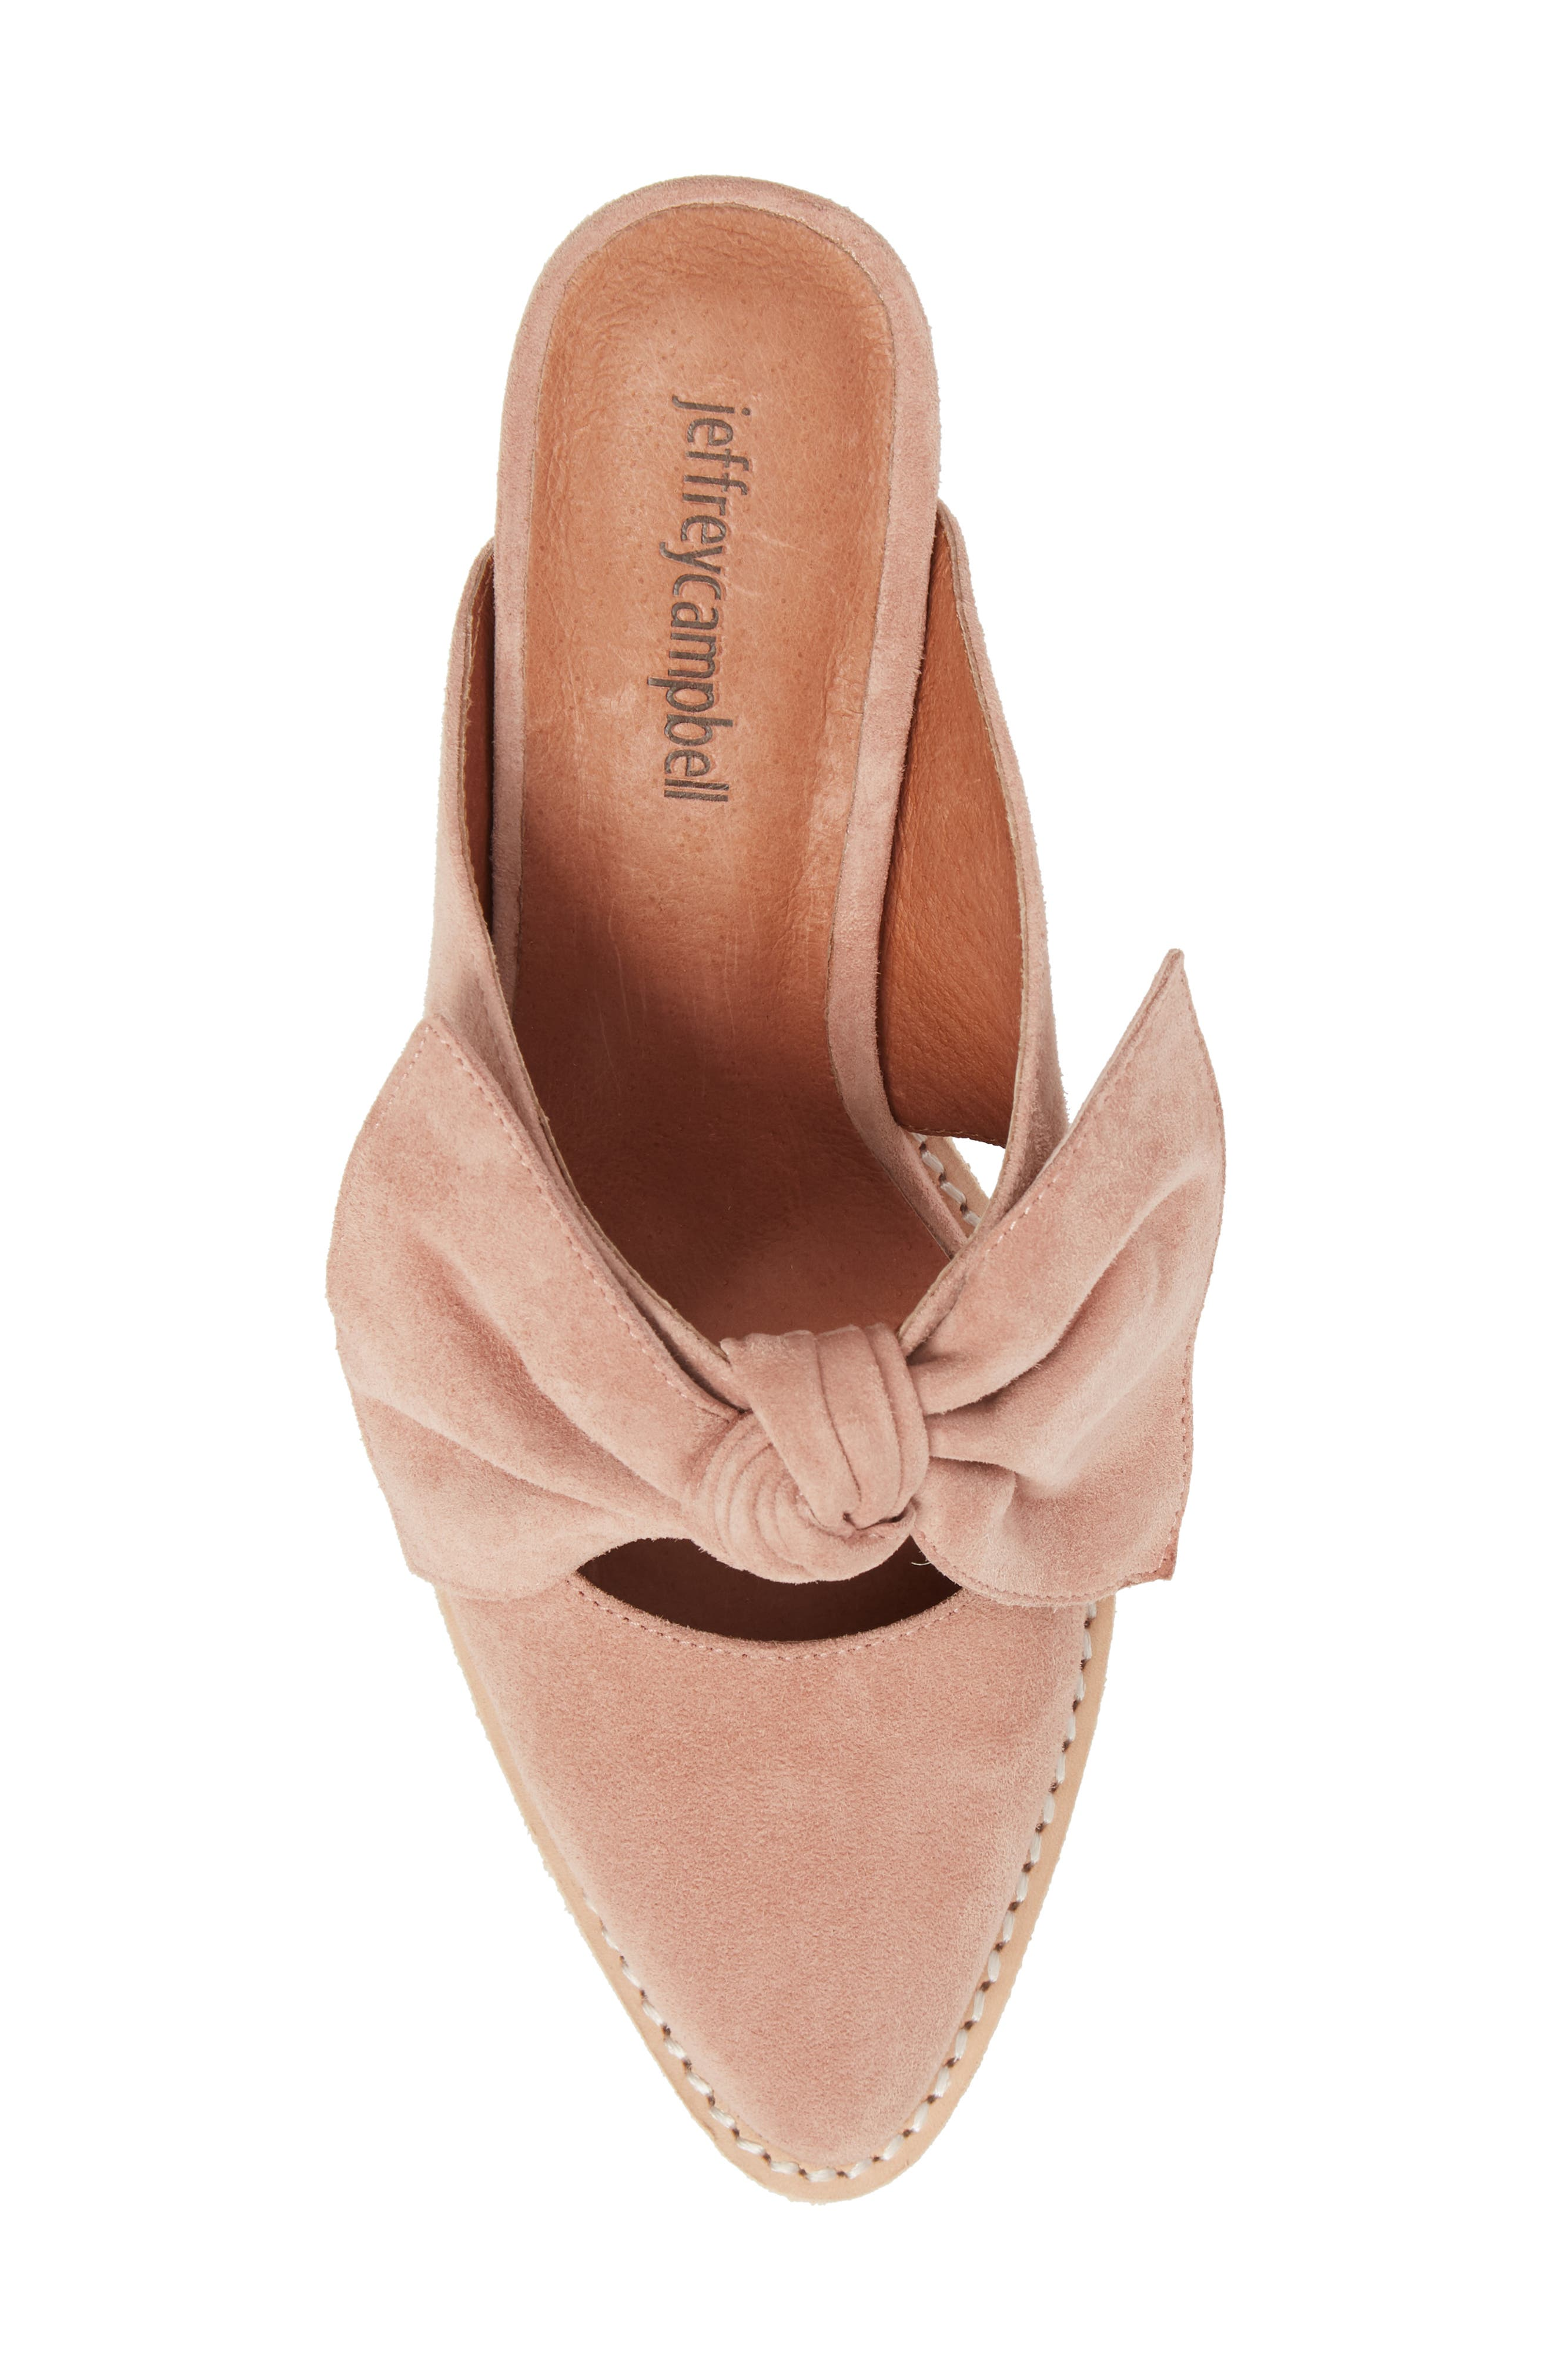 Cyrus Knotted Mary Jane Mule,                             Alternate thumbnail 5, color,                             Blush Suede